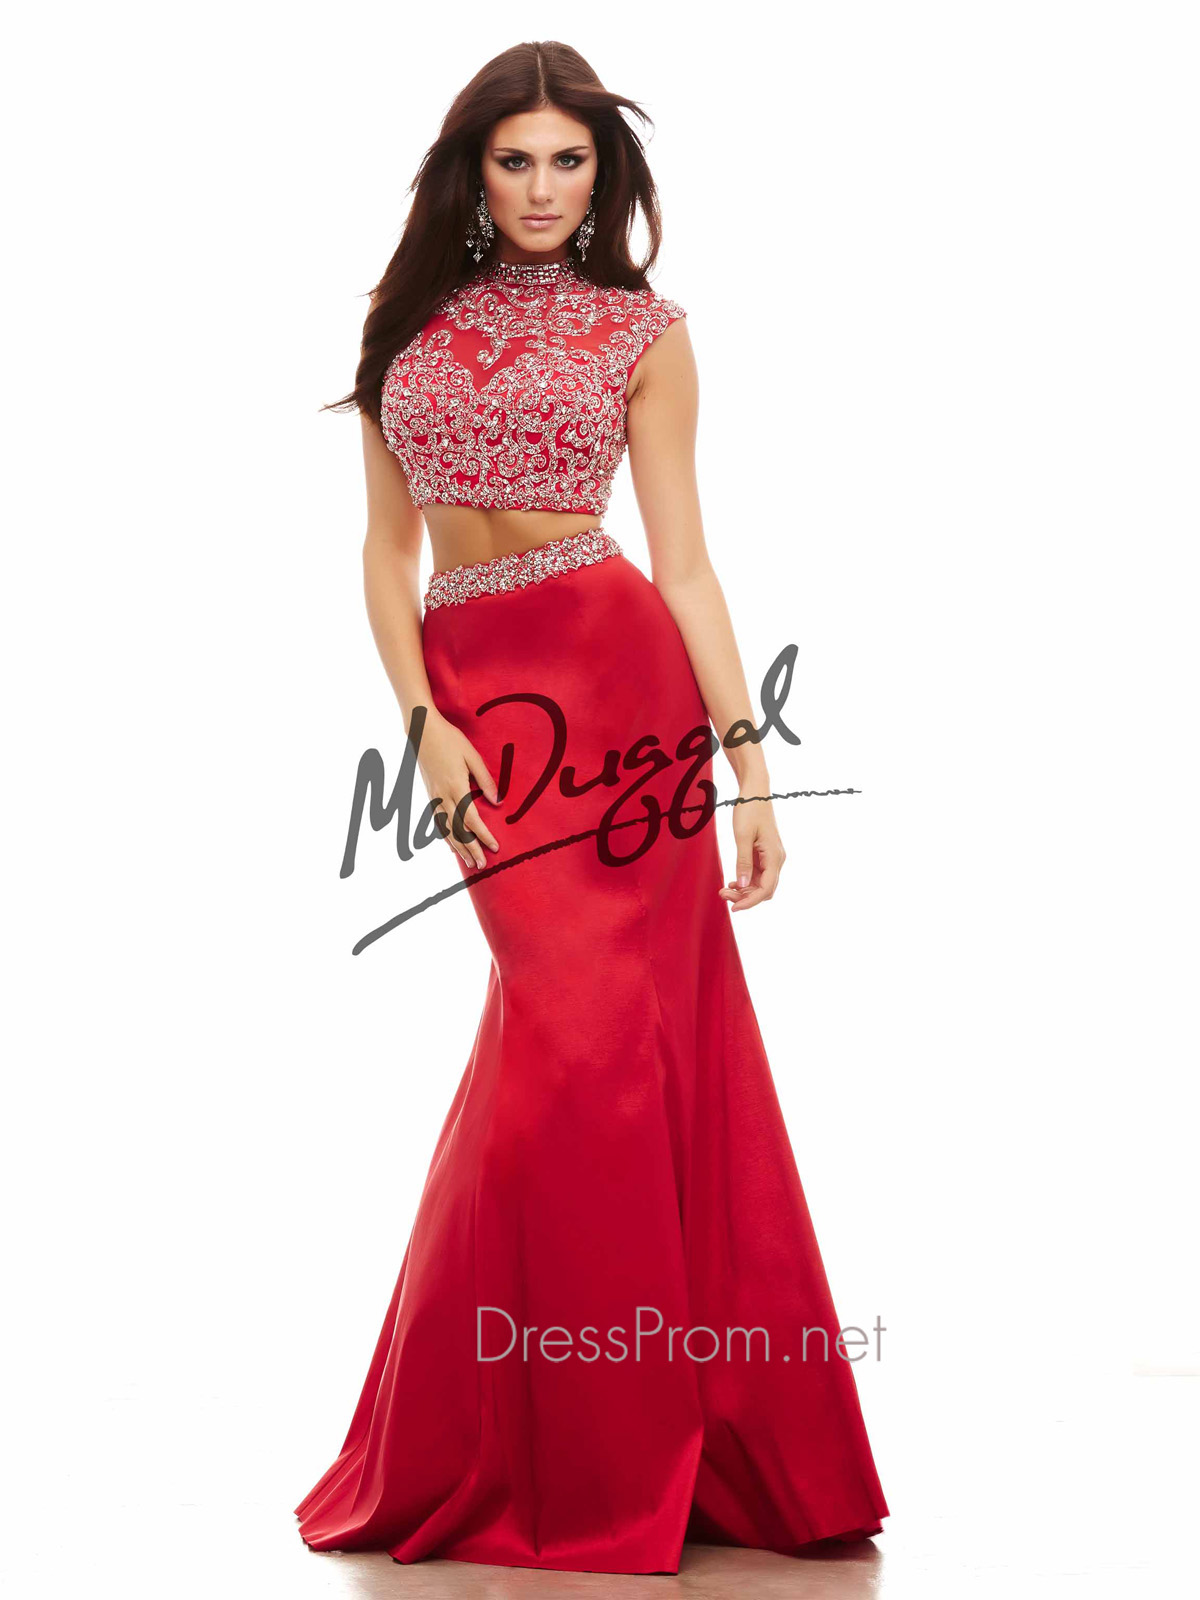 DressProm.net Announces 2015 Prom Dress Trends